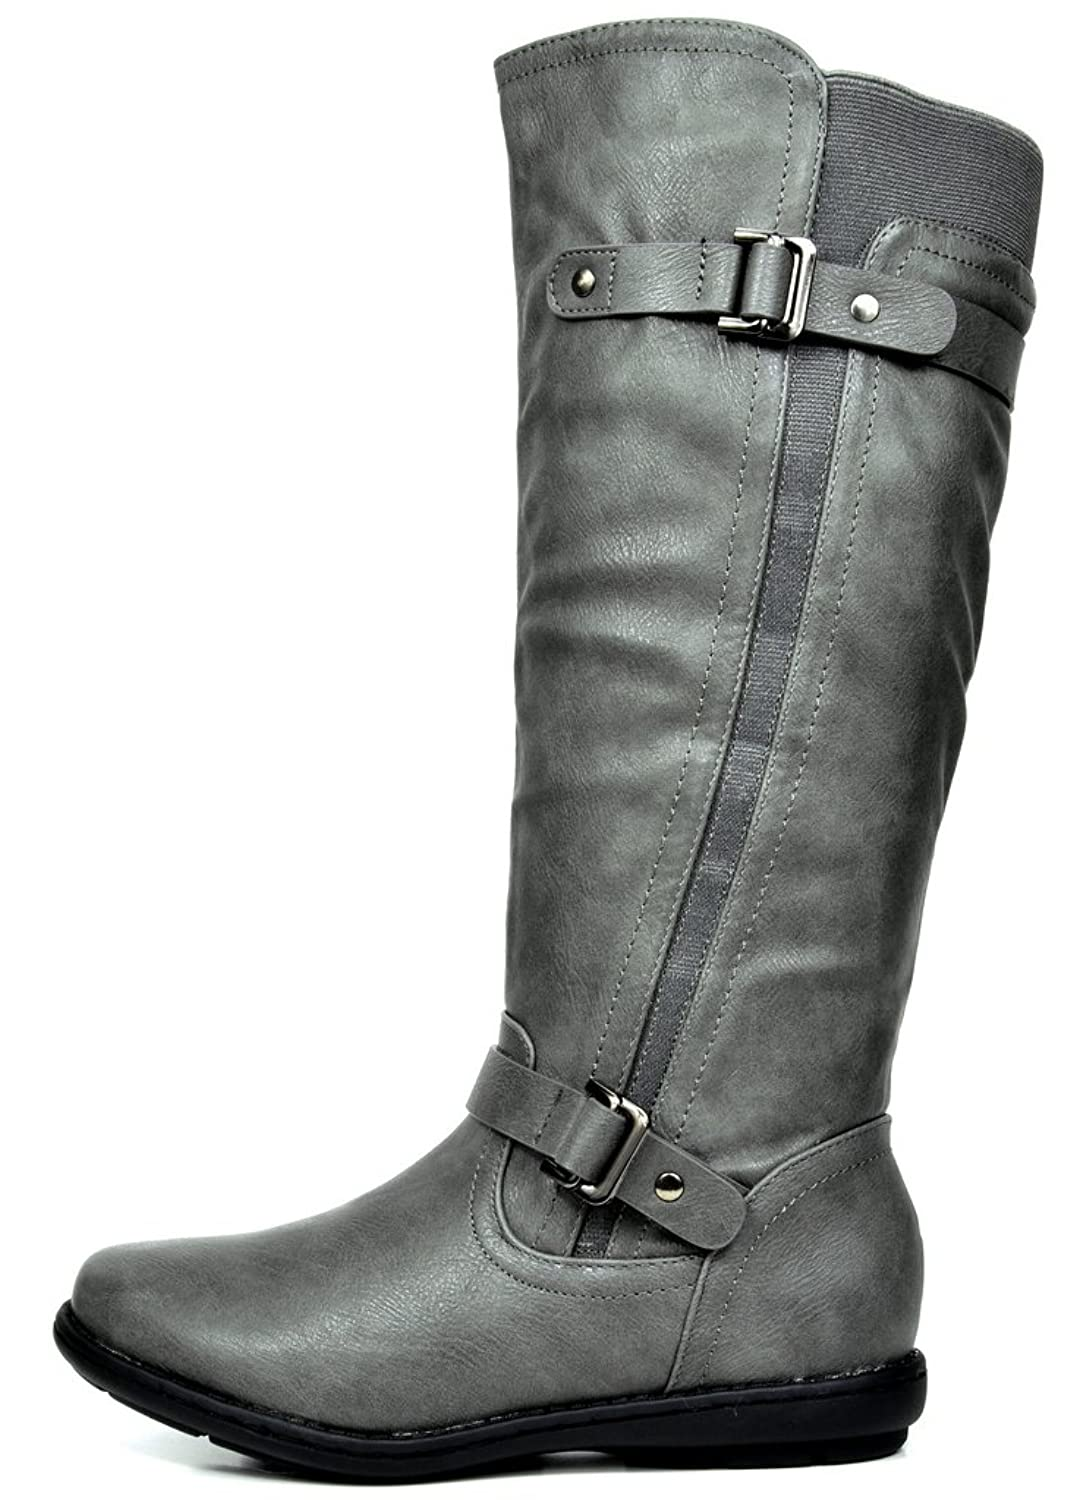 e68f1d31400 ... DREAM PAIRS Women s Faux Fur-Lined Knee High Winter Winter Winter Boots  (Wide- ...